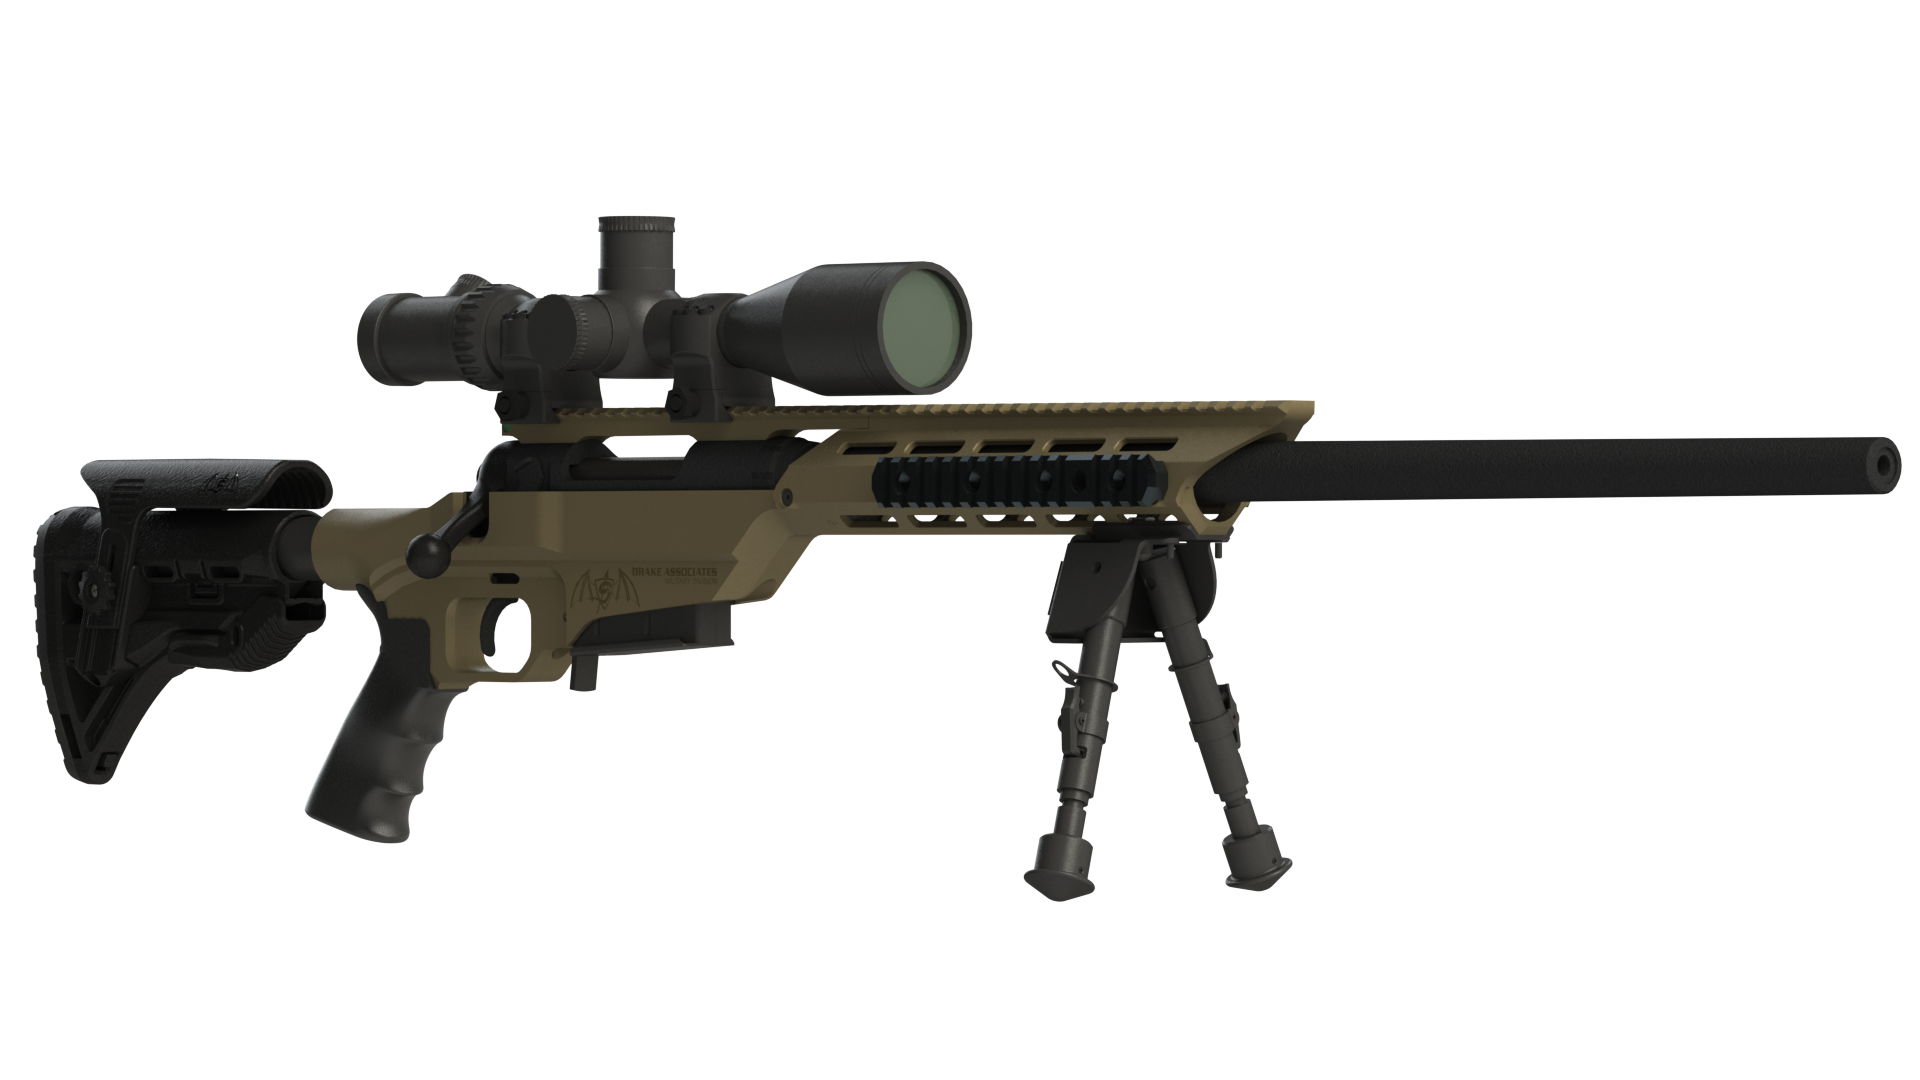 Download Animated Sniper Png Image For Free Sniper Png Images Png